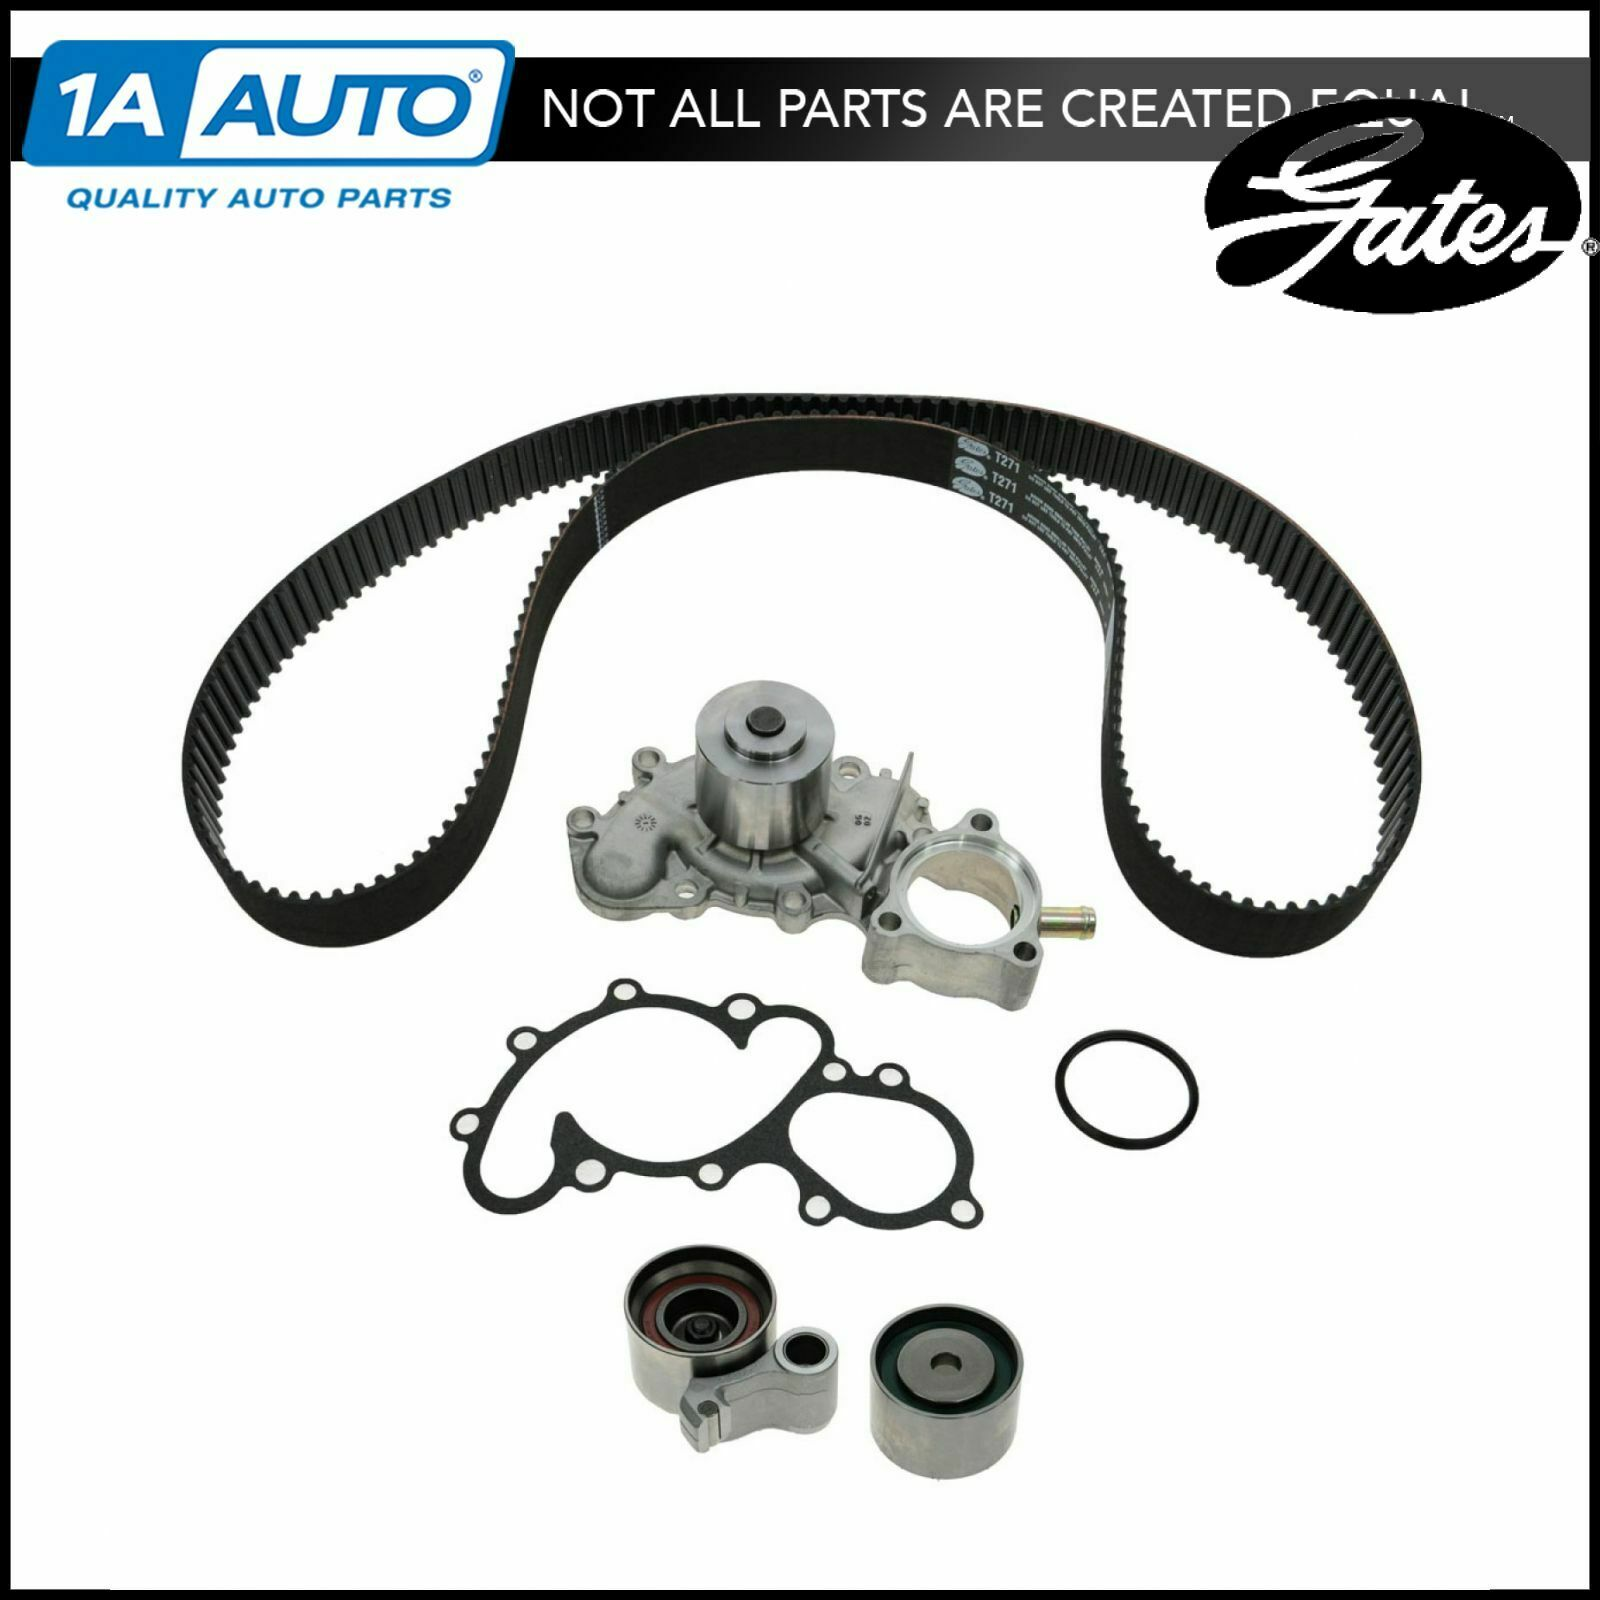 Timing Belt Kit W Water Pump Tckwp271b Gates For Toyota Pickup 1992 4runner 1 Of 4only 2 Available